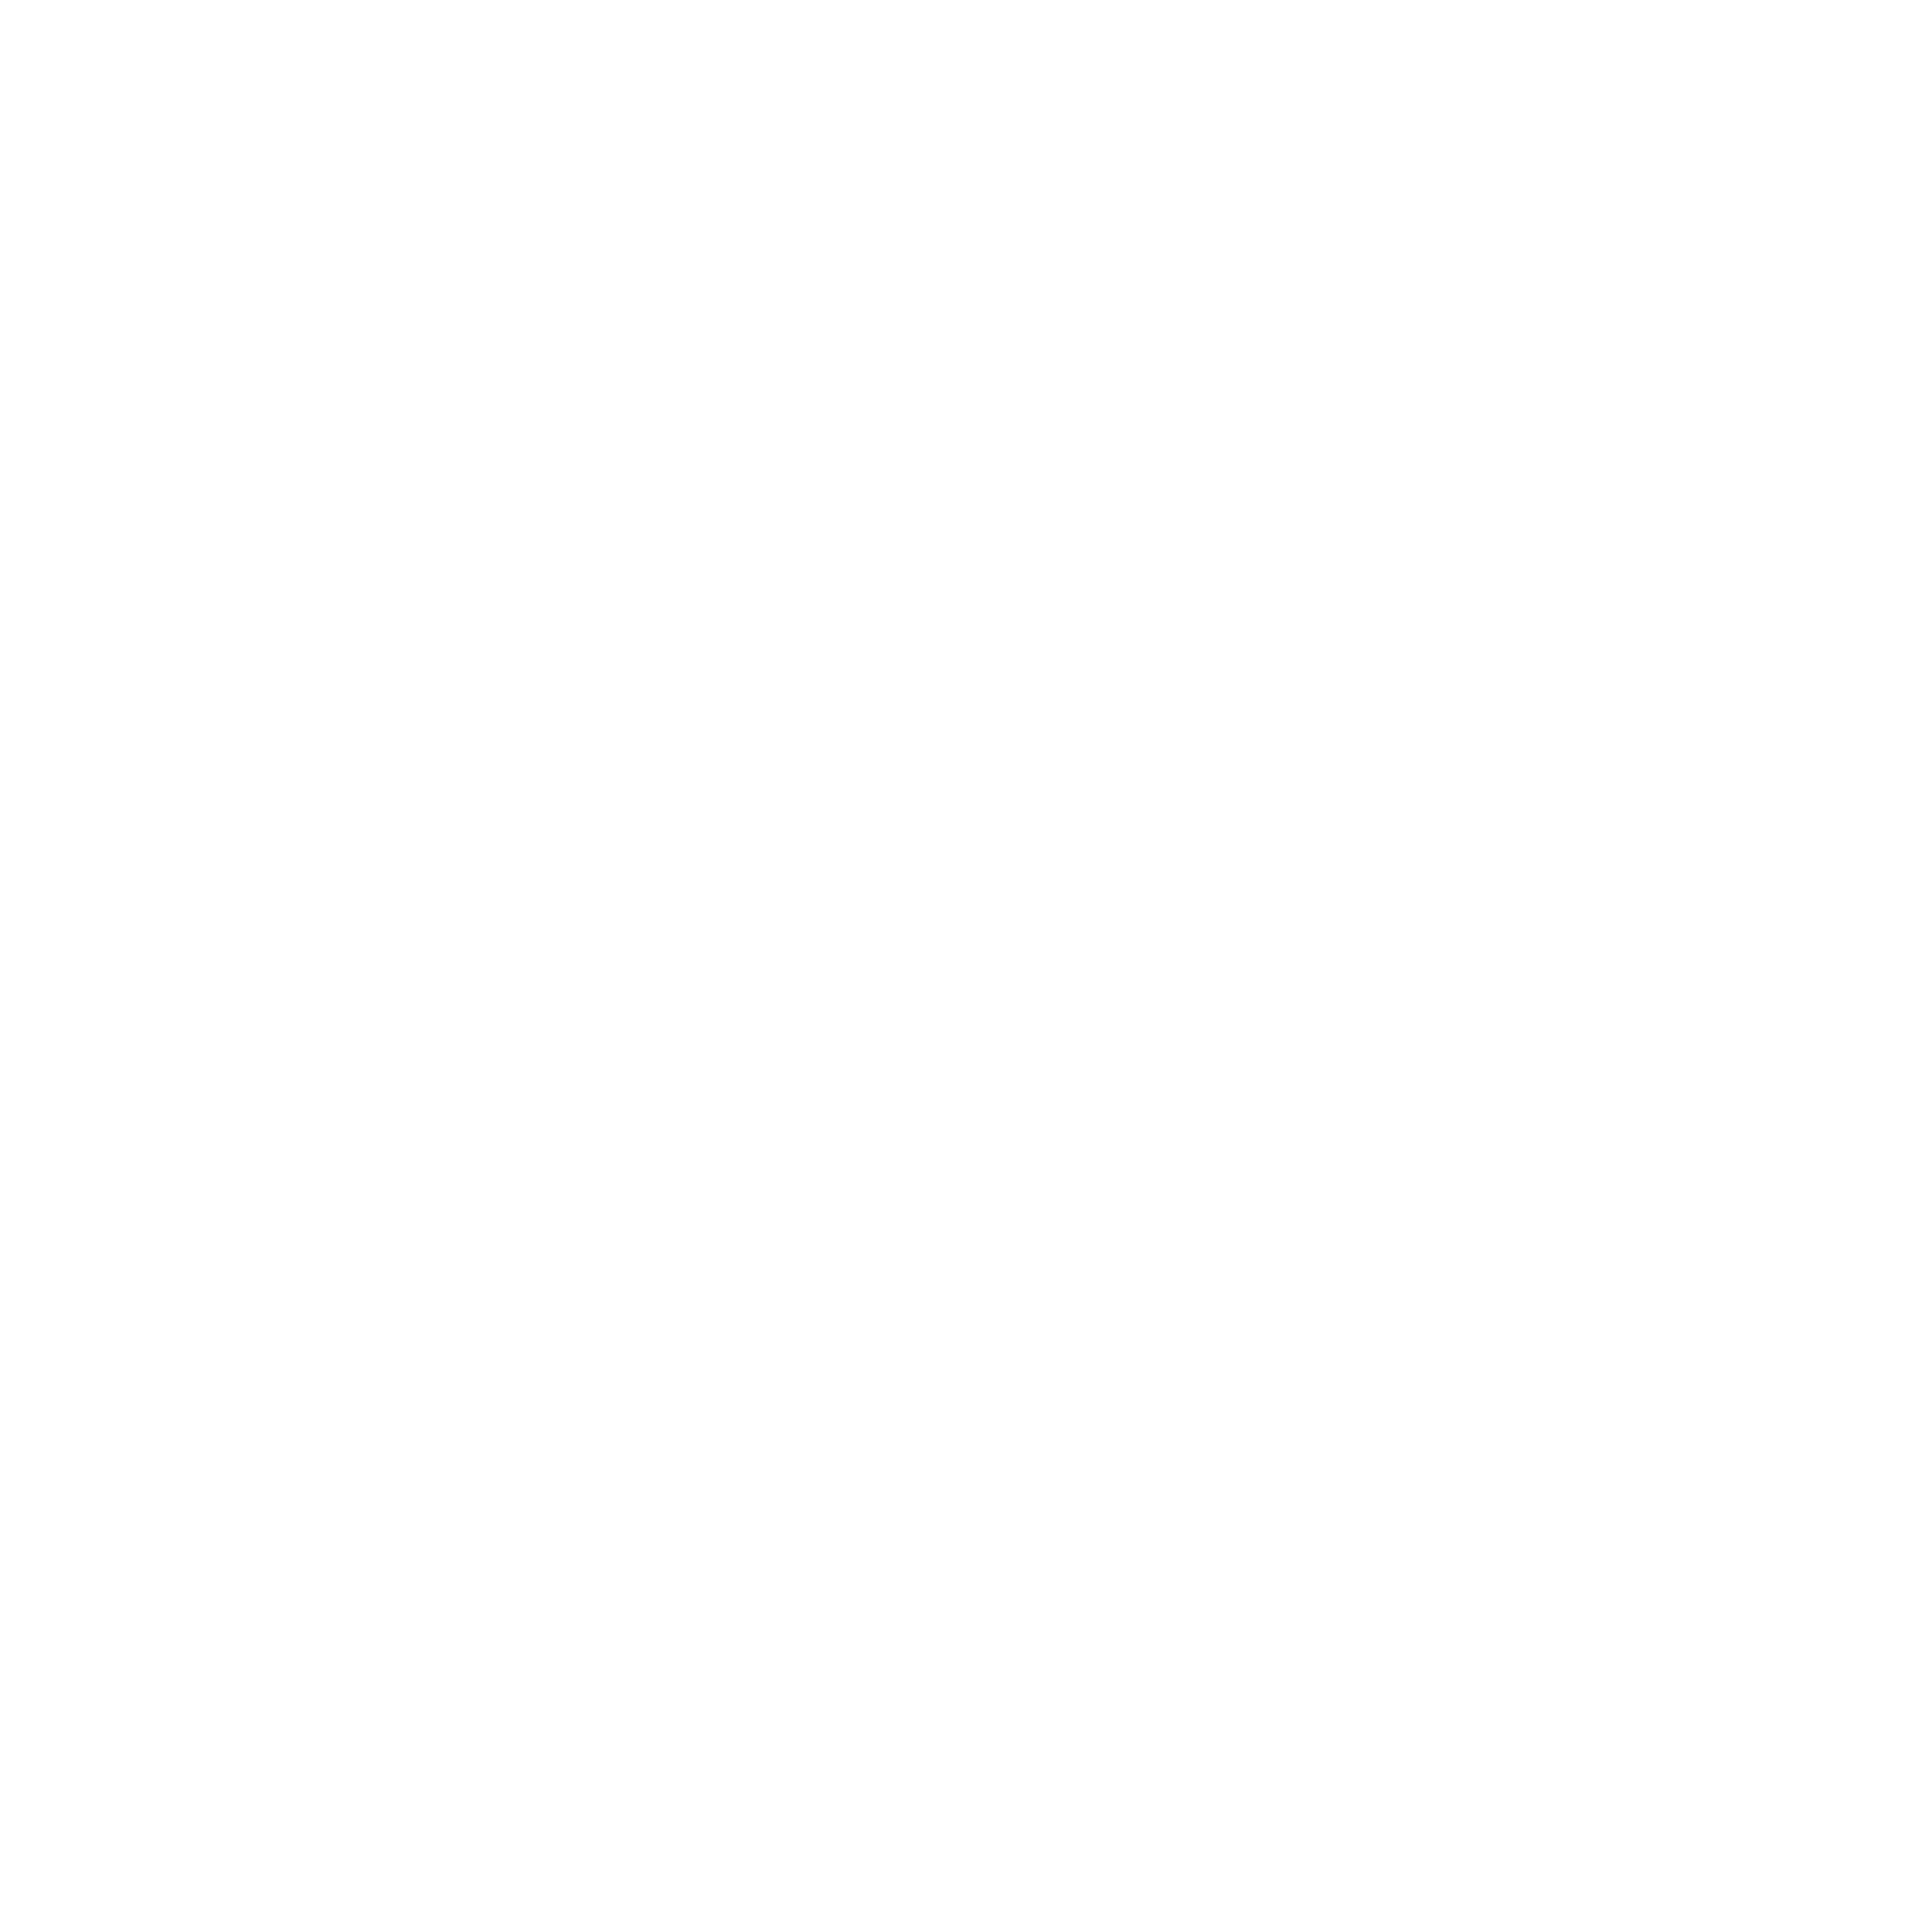 Mortgage innovators_Conference_stacked white